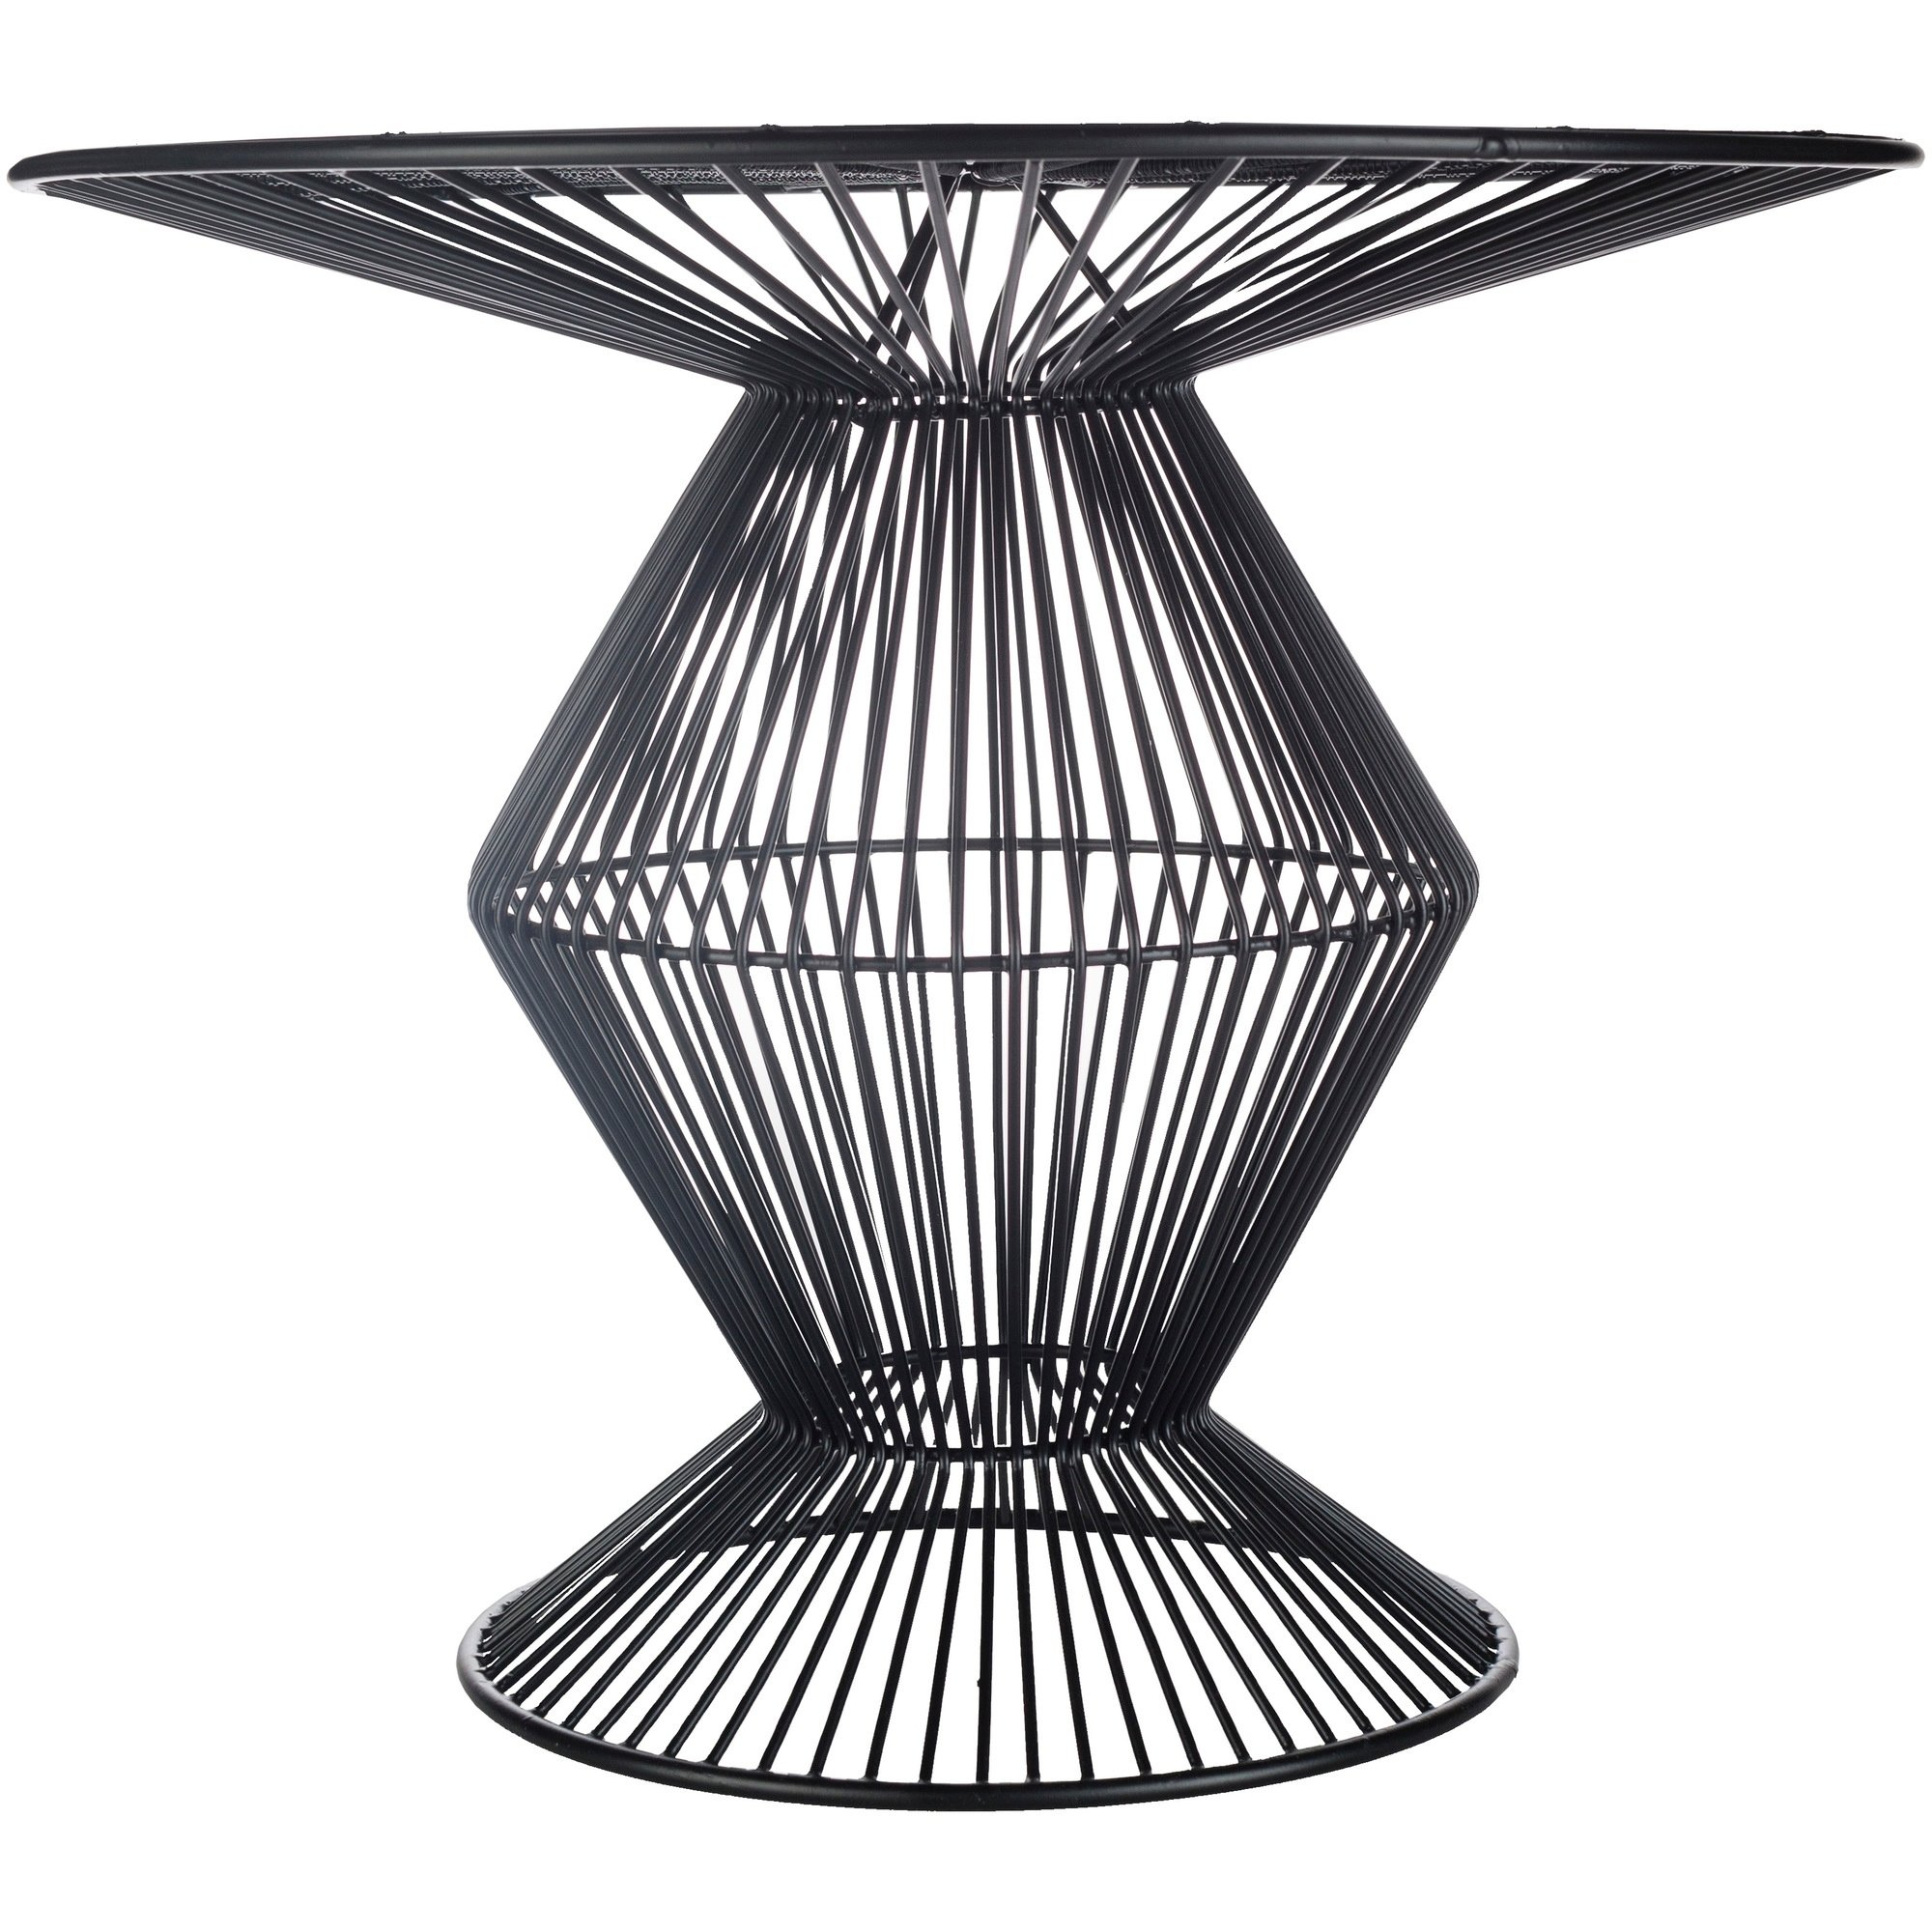 ryder black modern metal wire accent table free small shipping today hampton bay furniture white student desk tiffany style chandelier sofa and coffee mosaic tile outdoor door